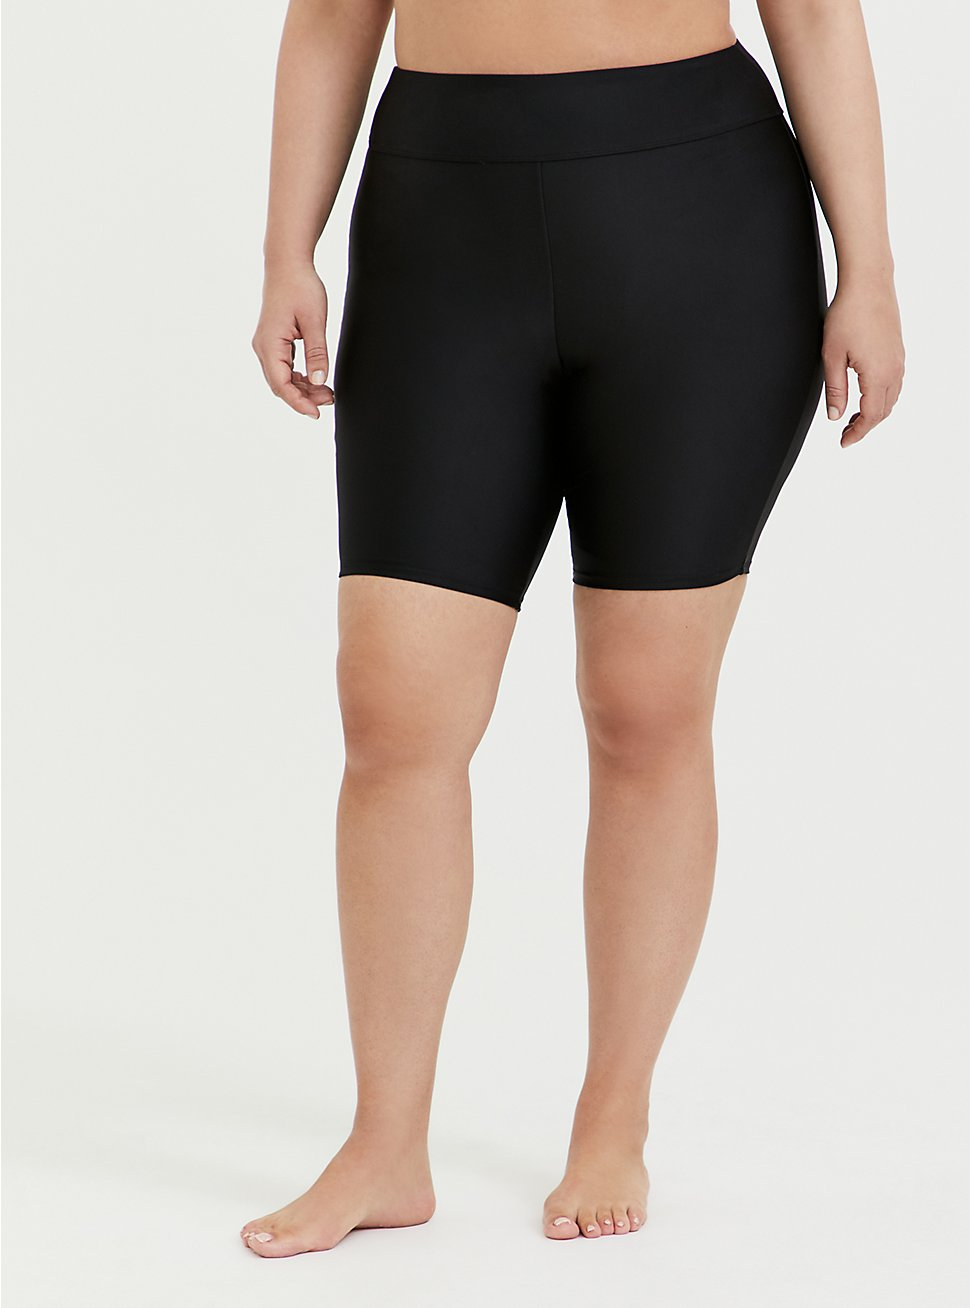 Black Swim Bike Short, DEEP BLACK, hi-res